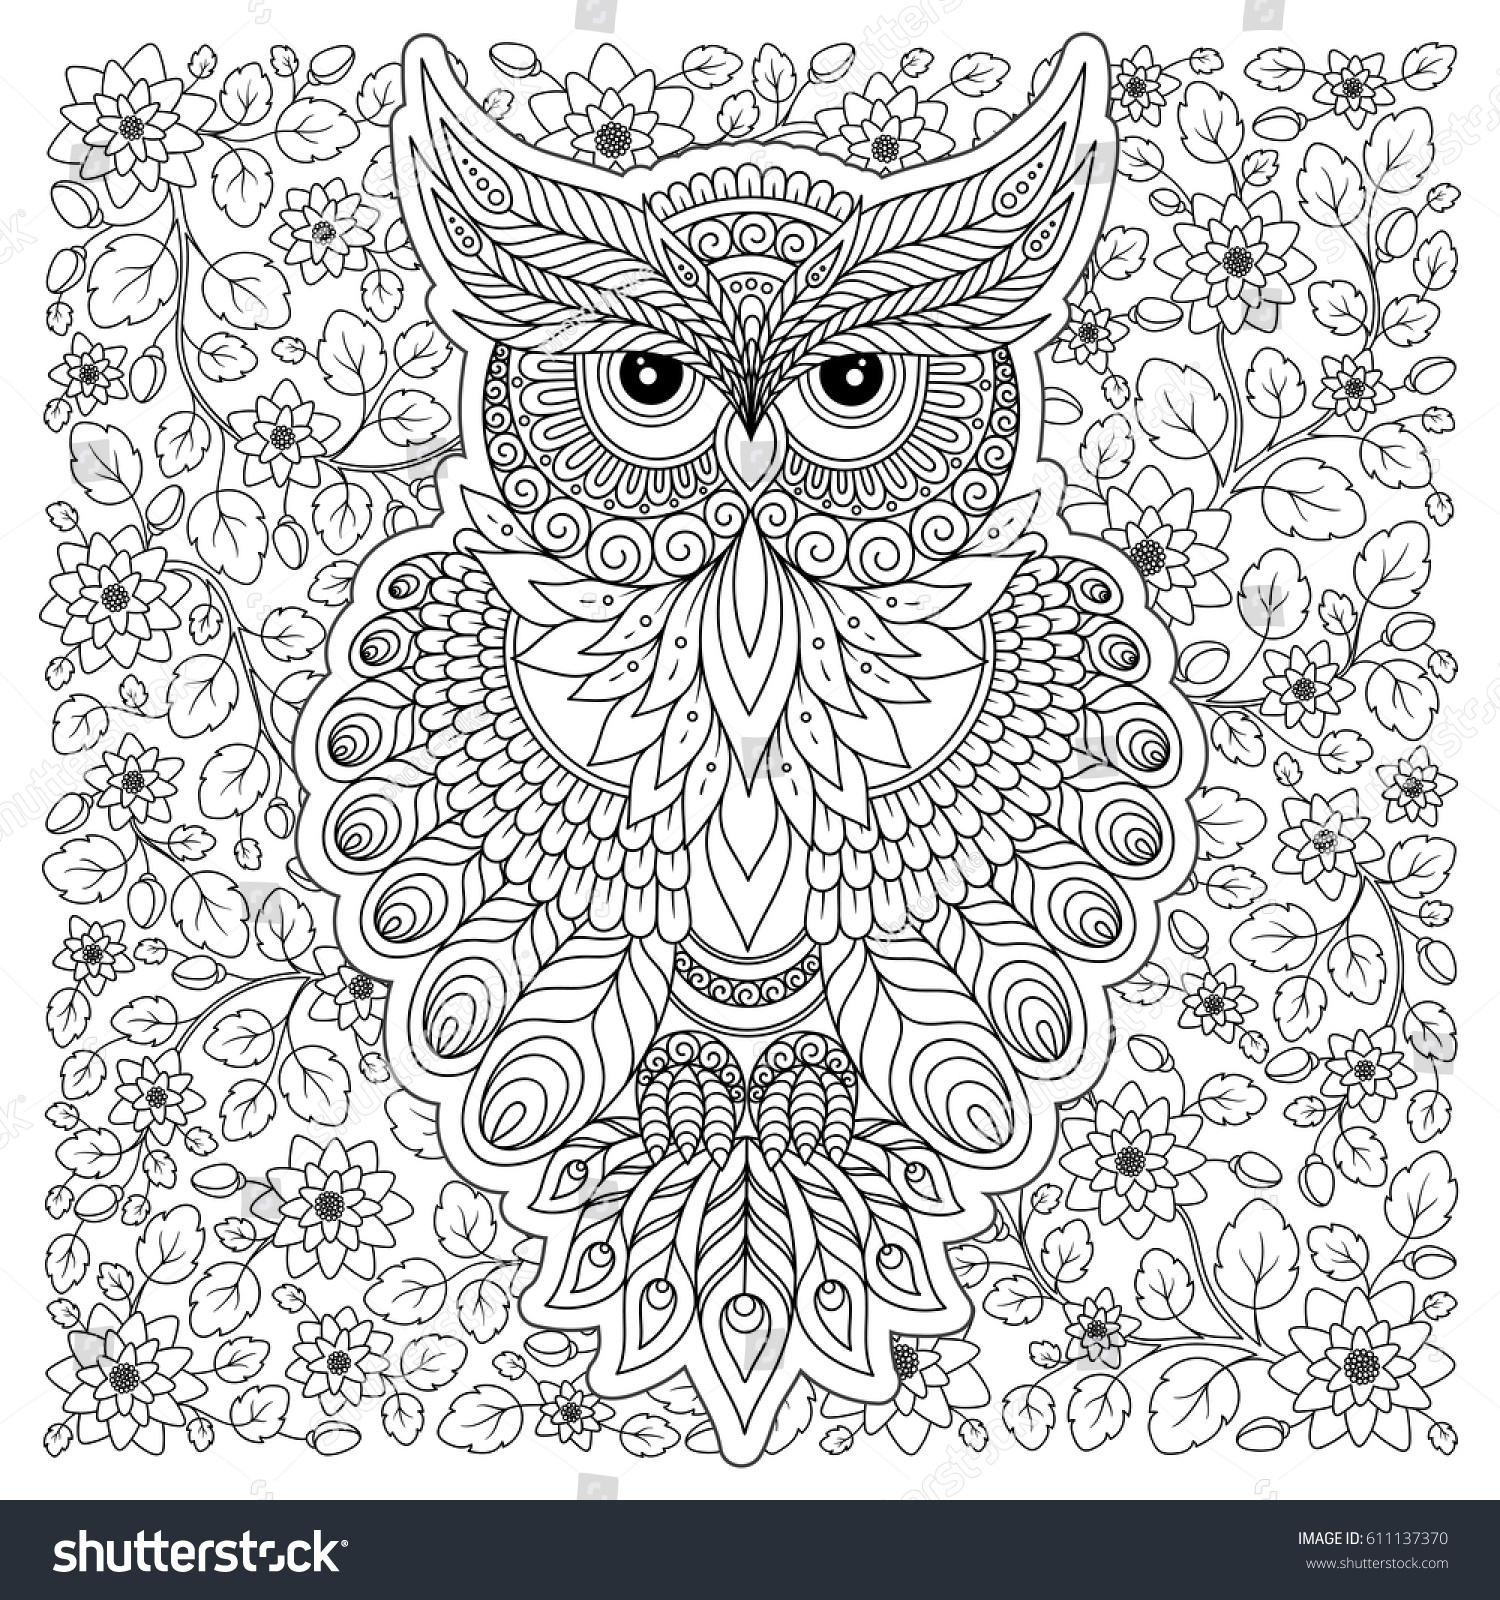 older children coloring pages - photo#48